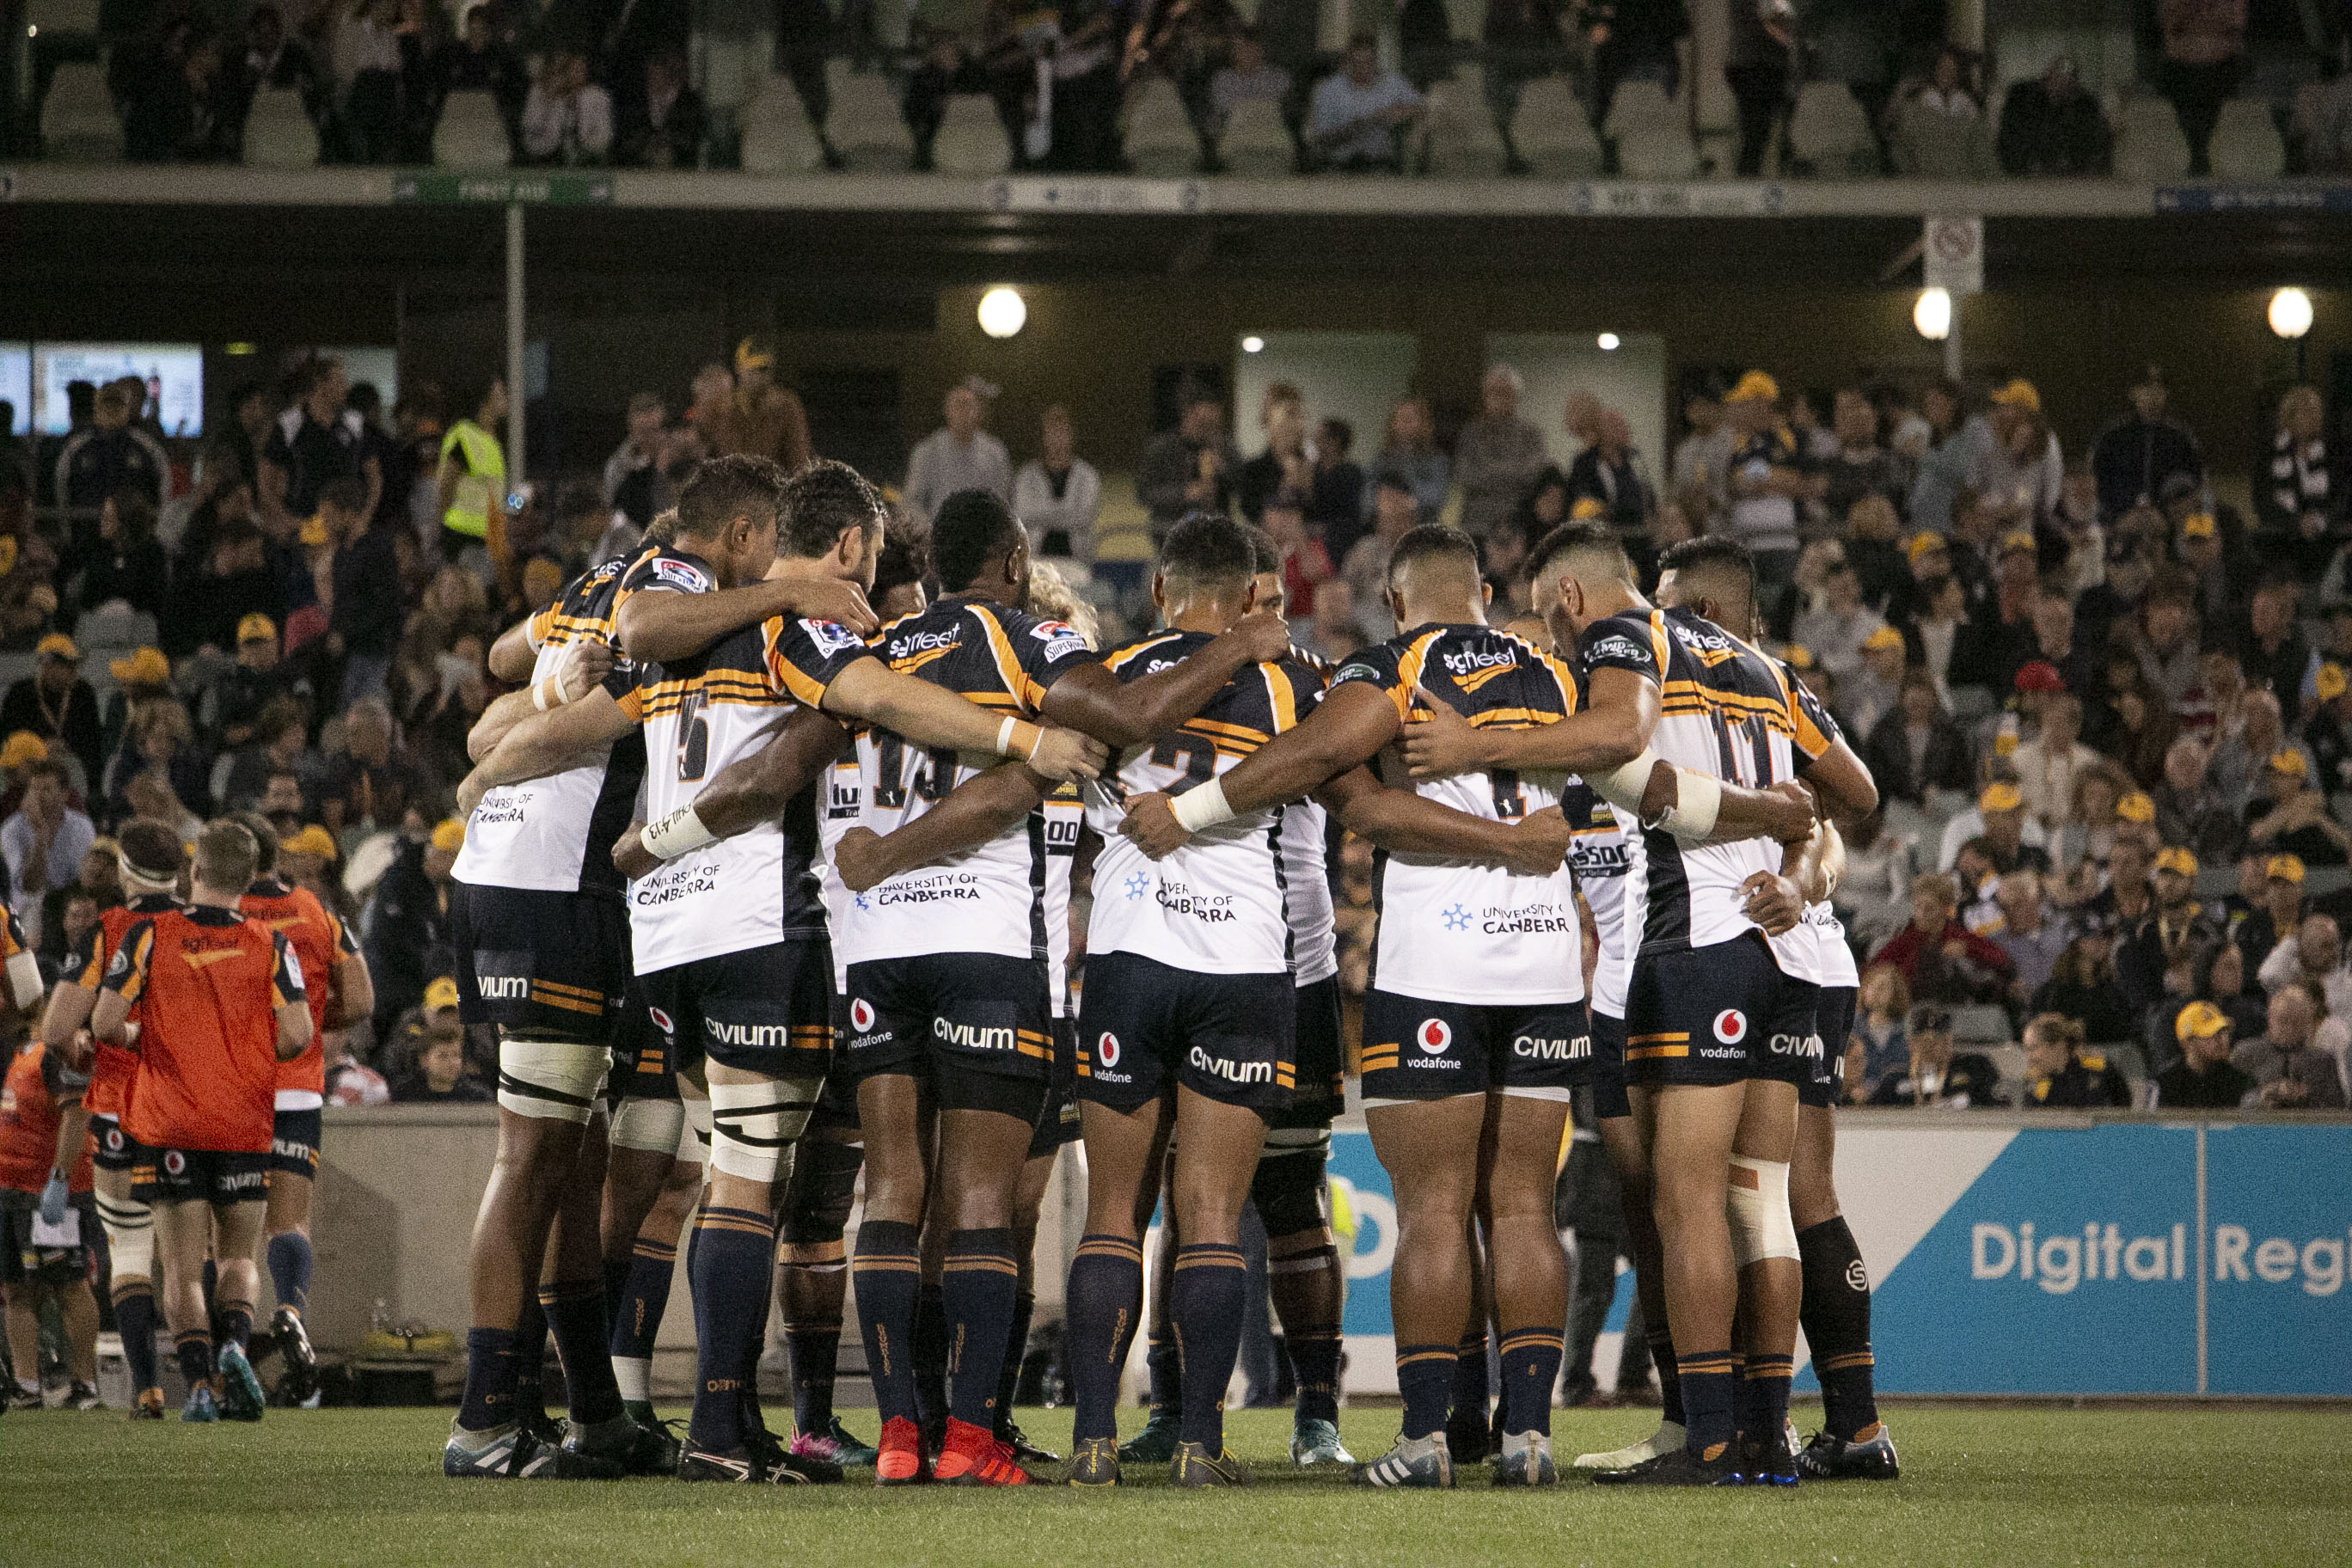 Brumbies Back In the Big Time as 2020 Beckons